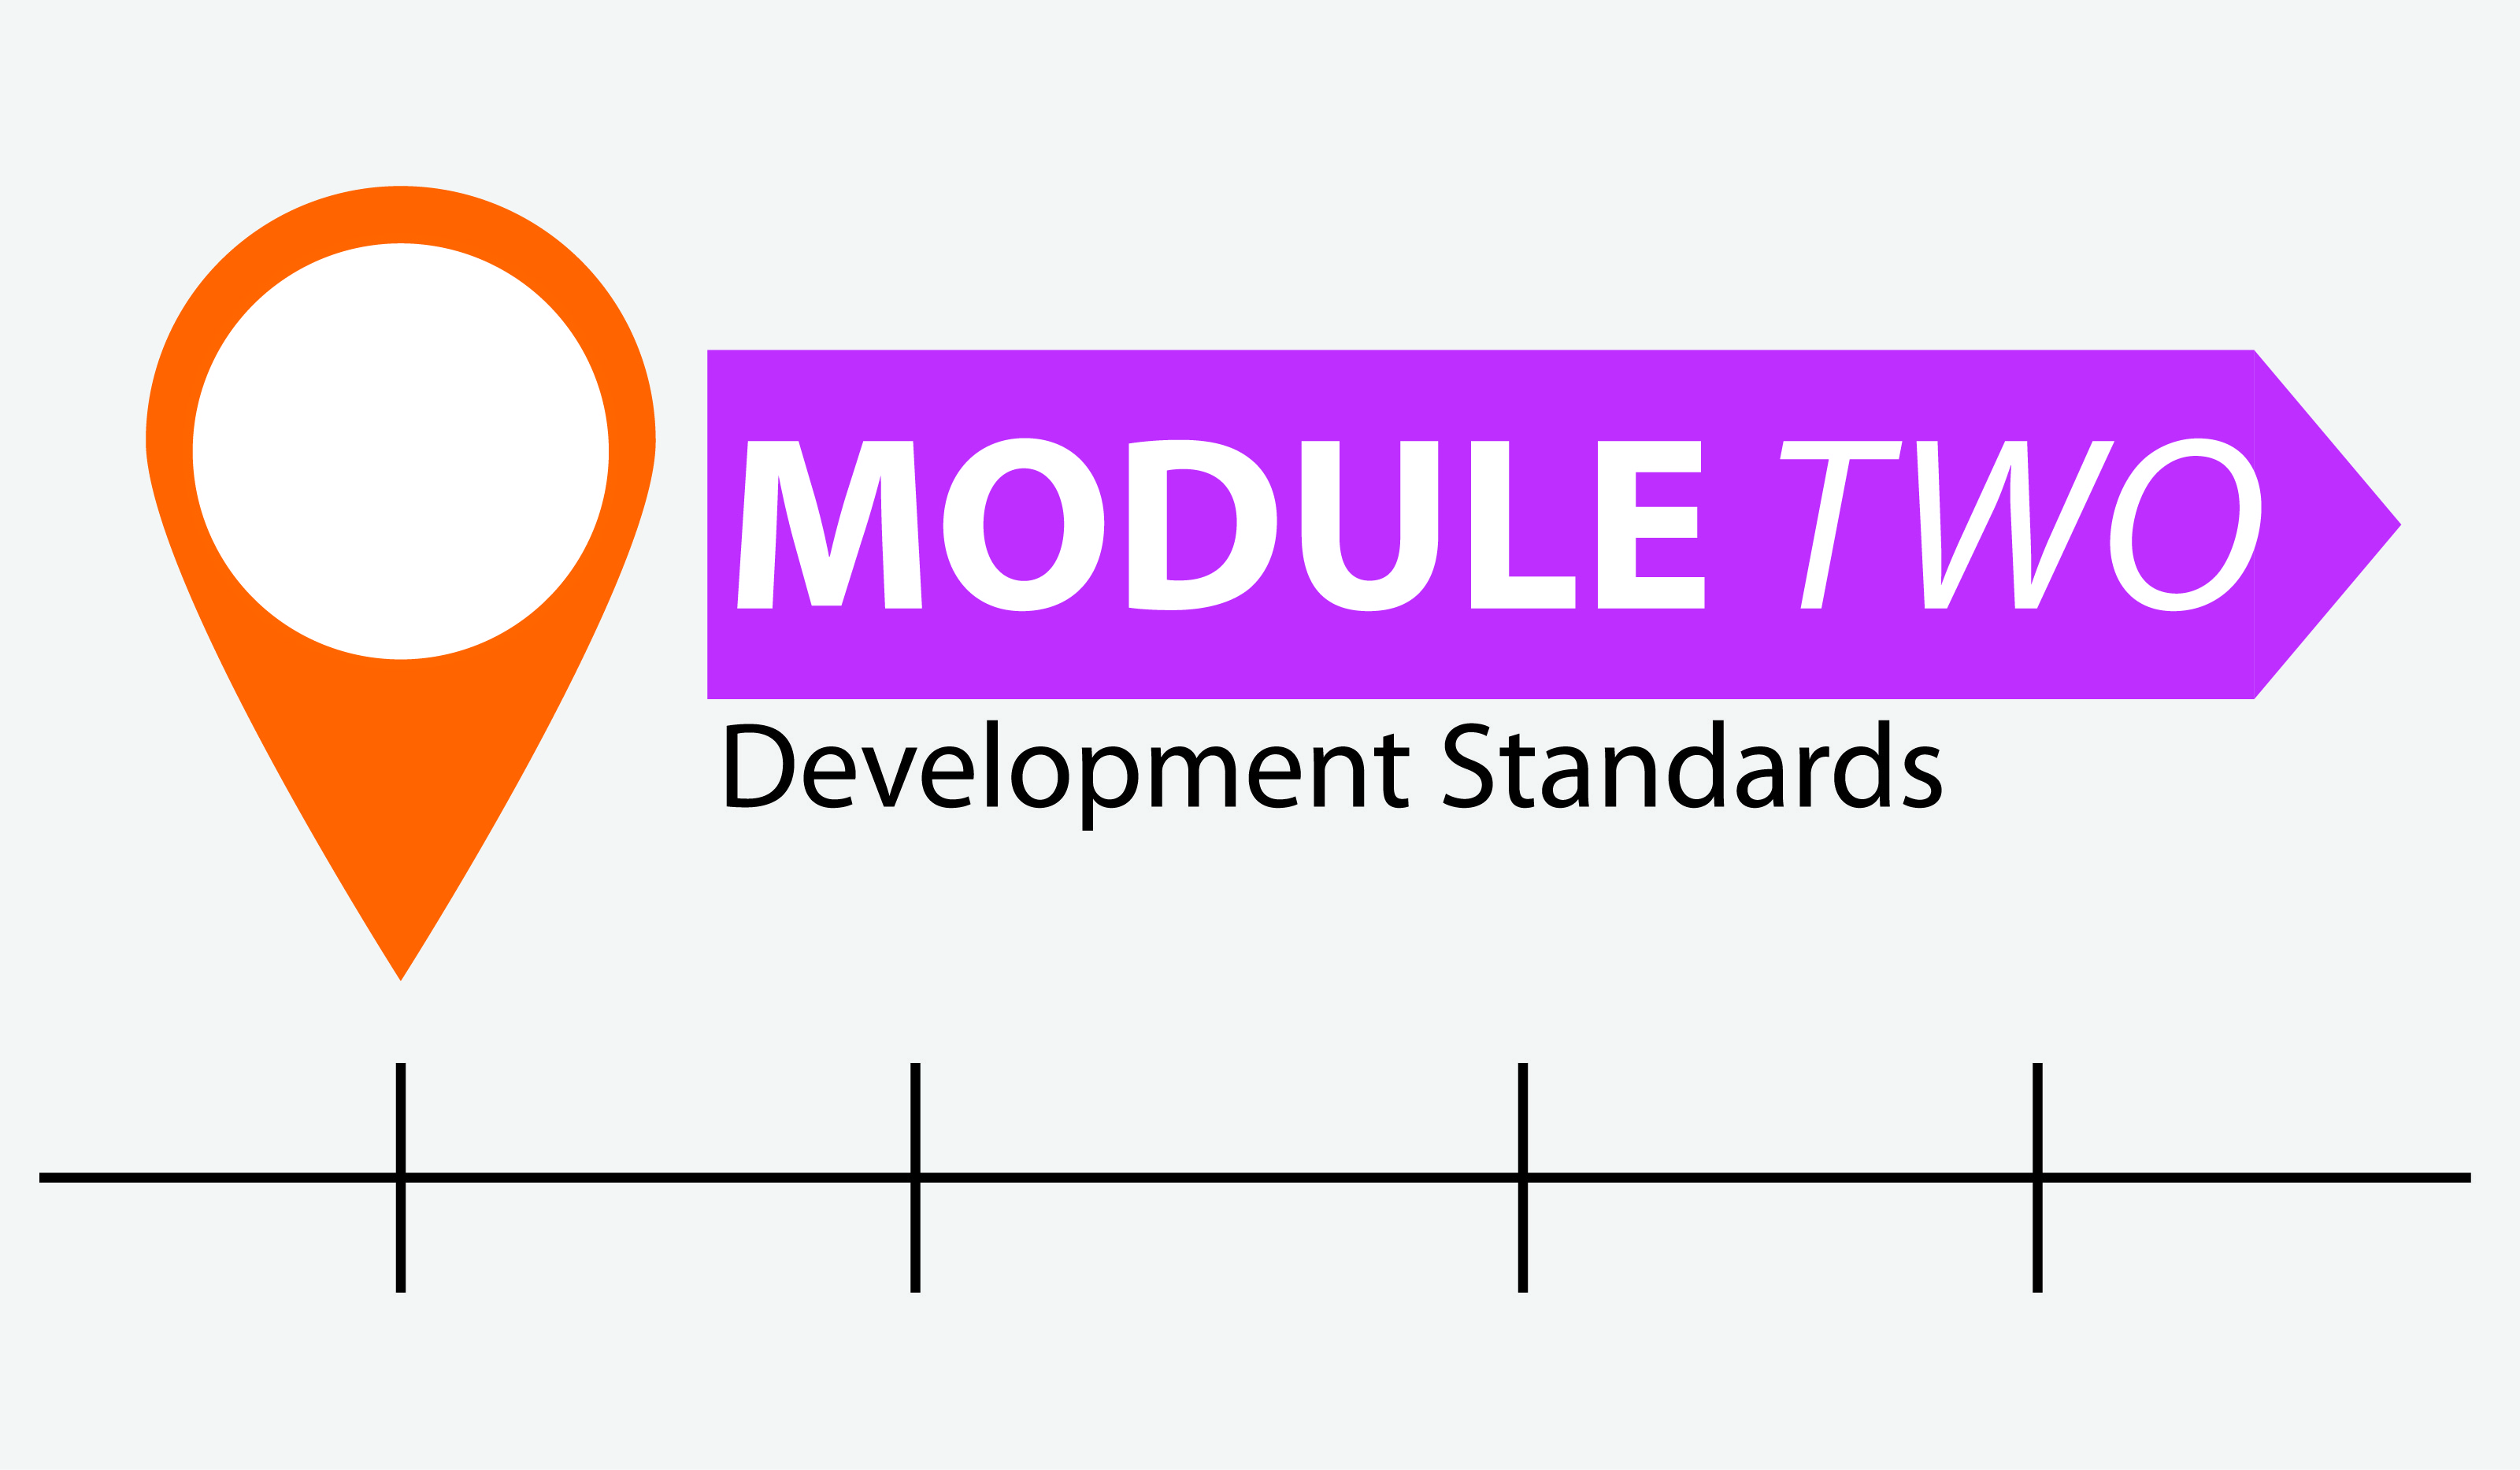 Module 2 Development Standards Is Available For Review And Comment